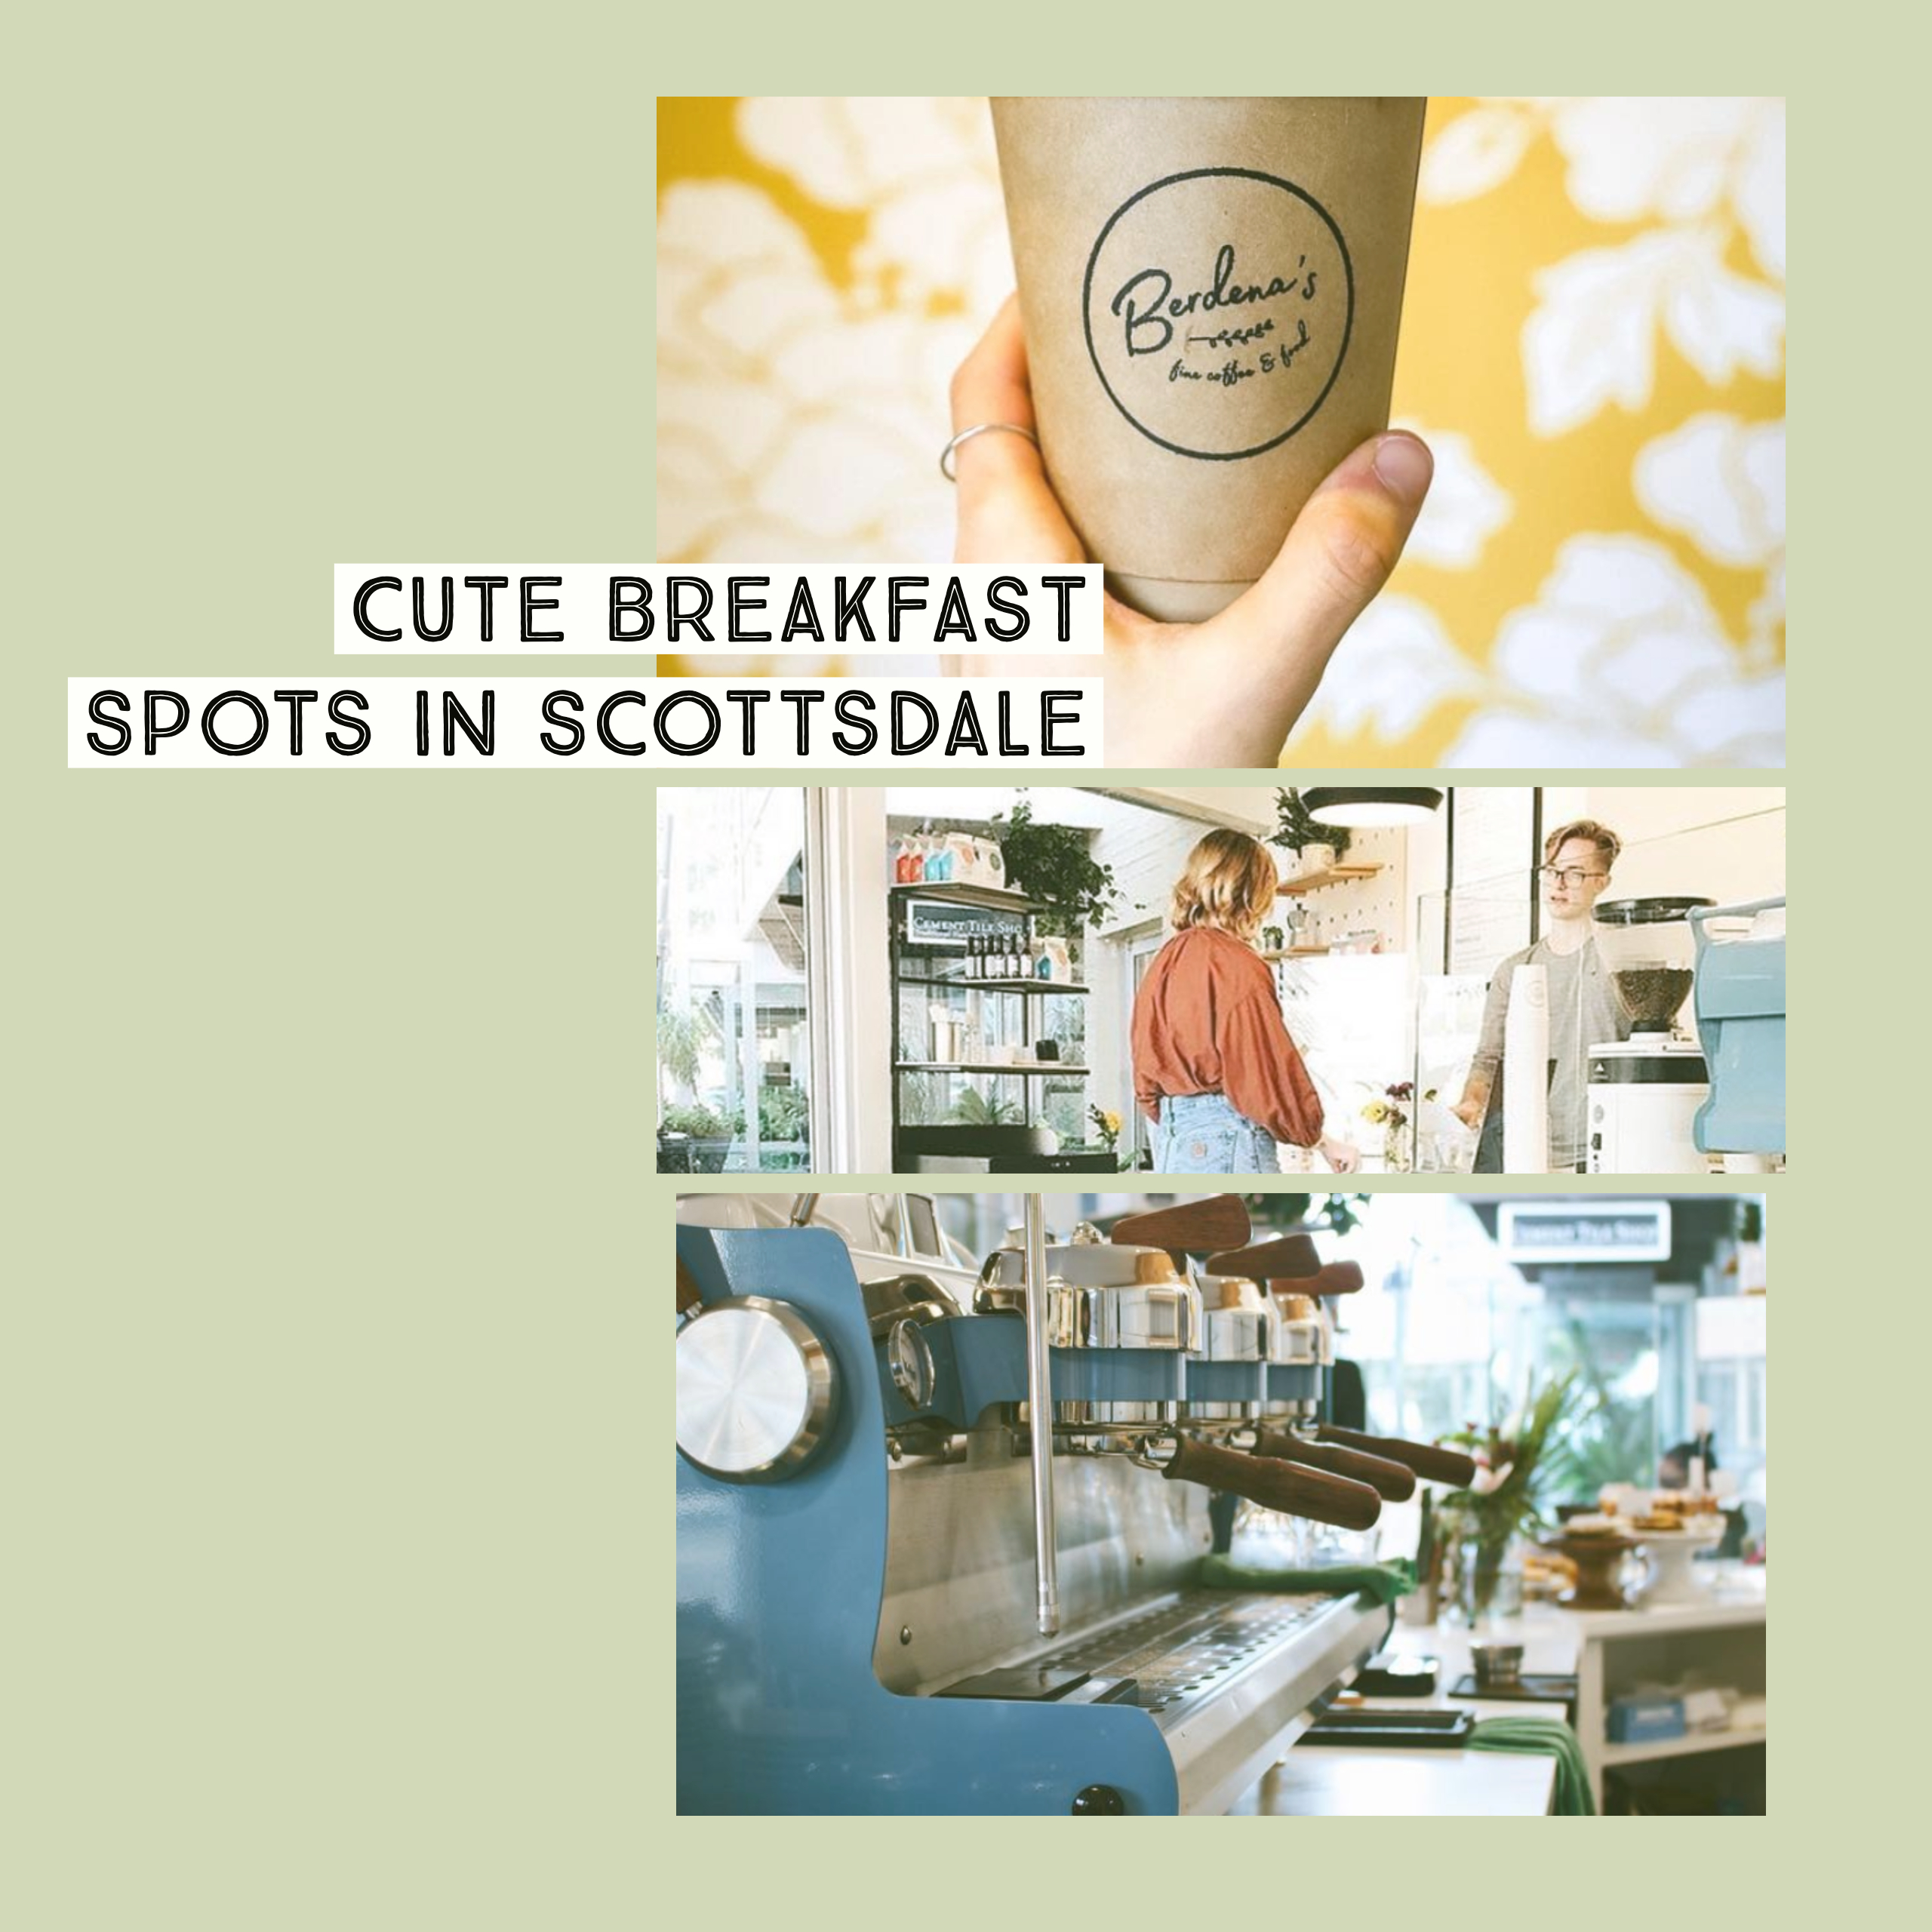 cute breakfast spots in scottsdale arizona for your bachelorette weekend